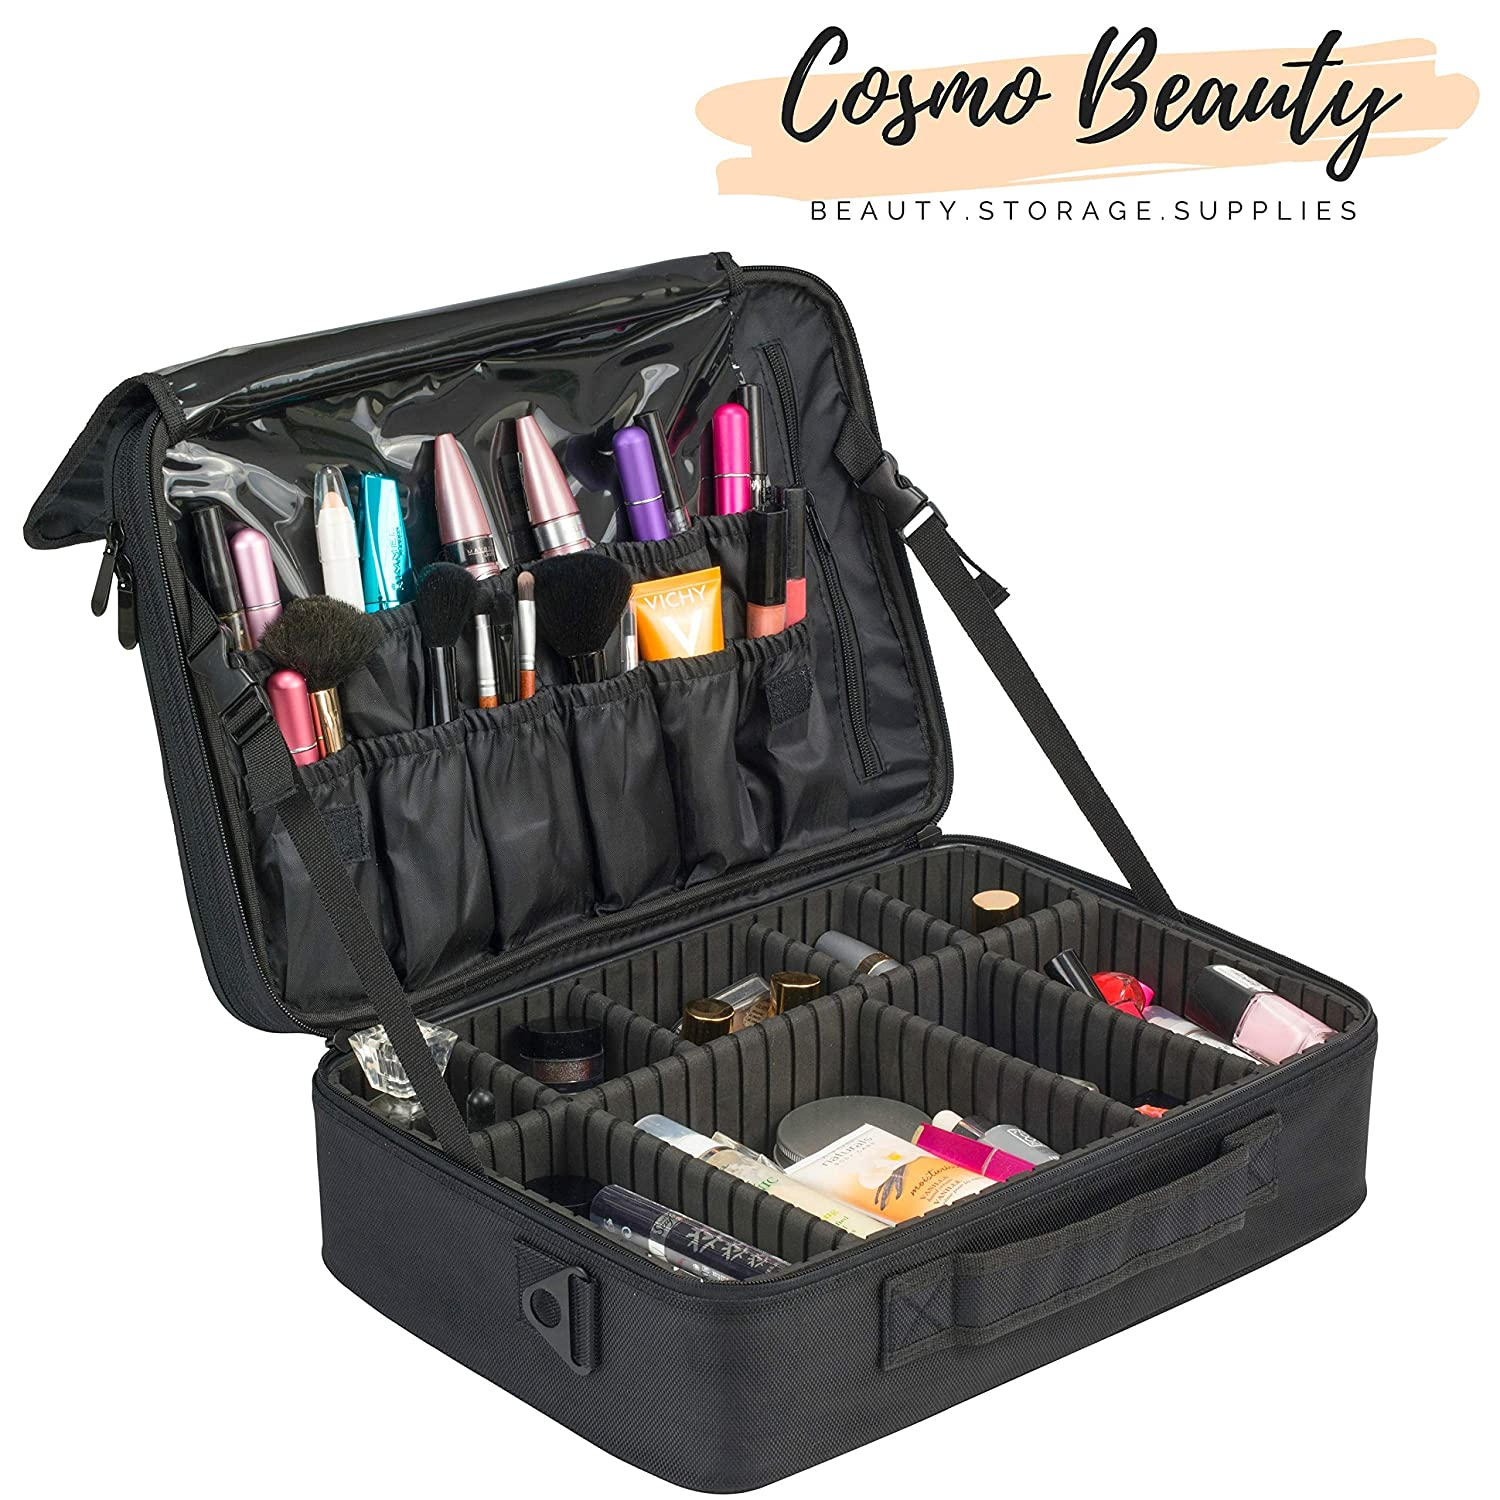 Cosmo Beauty Makeup Case – Large Professional Artist 3 Layers Travel Cosmetic Case 15.8 with Beauty Mirror and Adjustable Dividers, Perfect for Makeup Brushes, Jewelries, and Toiletries